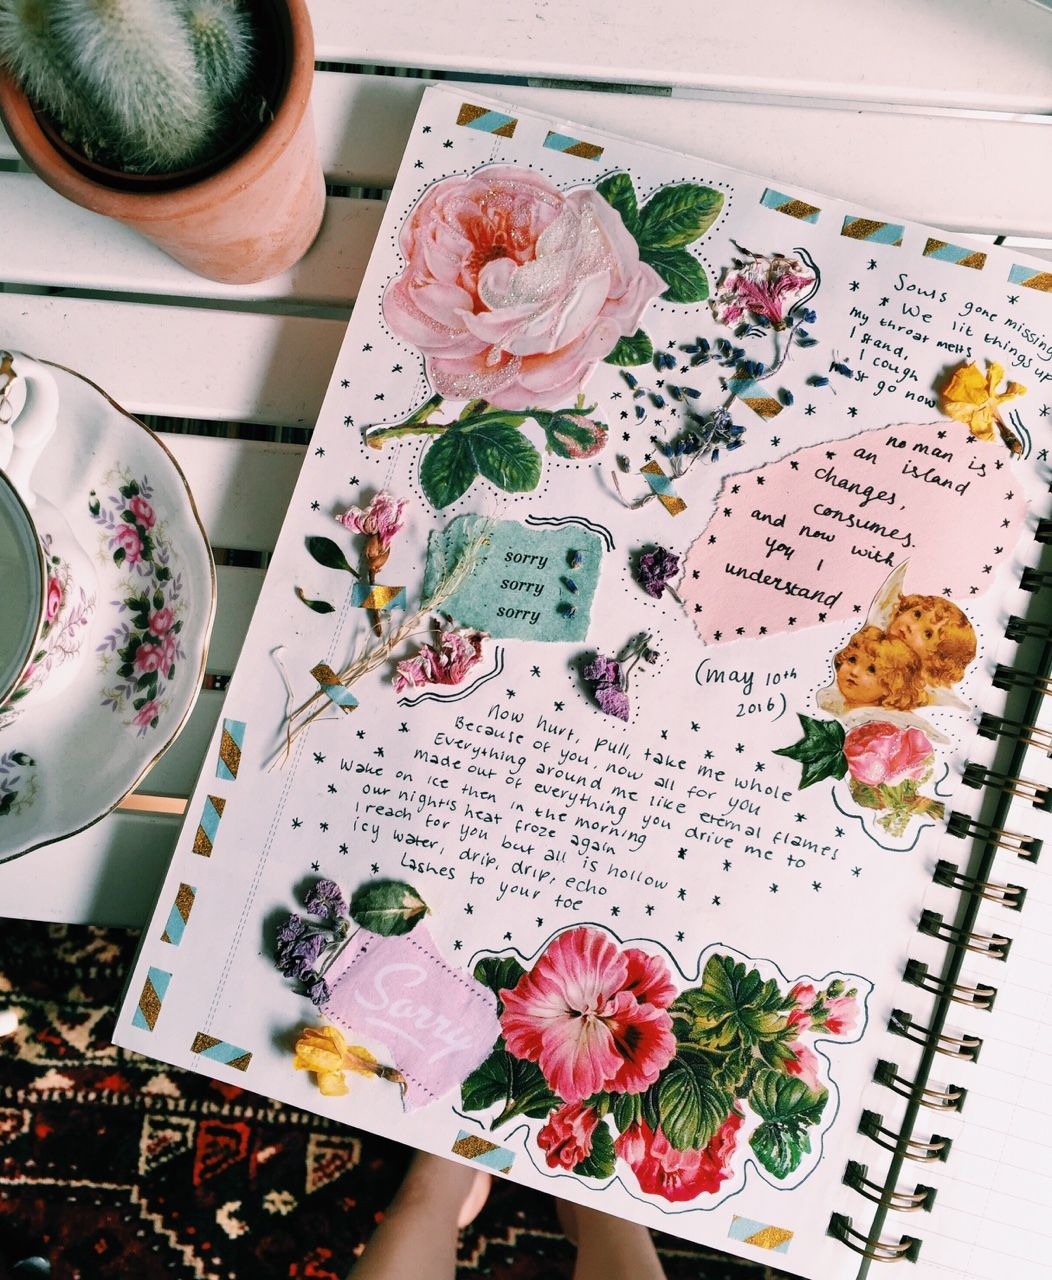 Scrapbook ideas with flowers - Dreamidle Back At It Again With The Flowers In My Journal Some Lines I Wrote